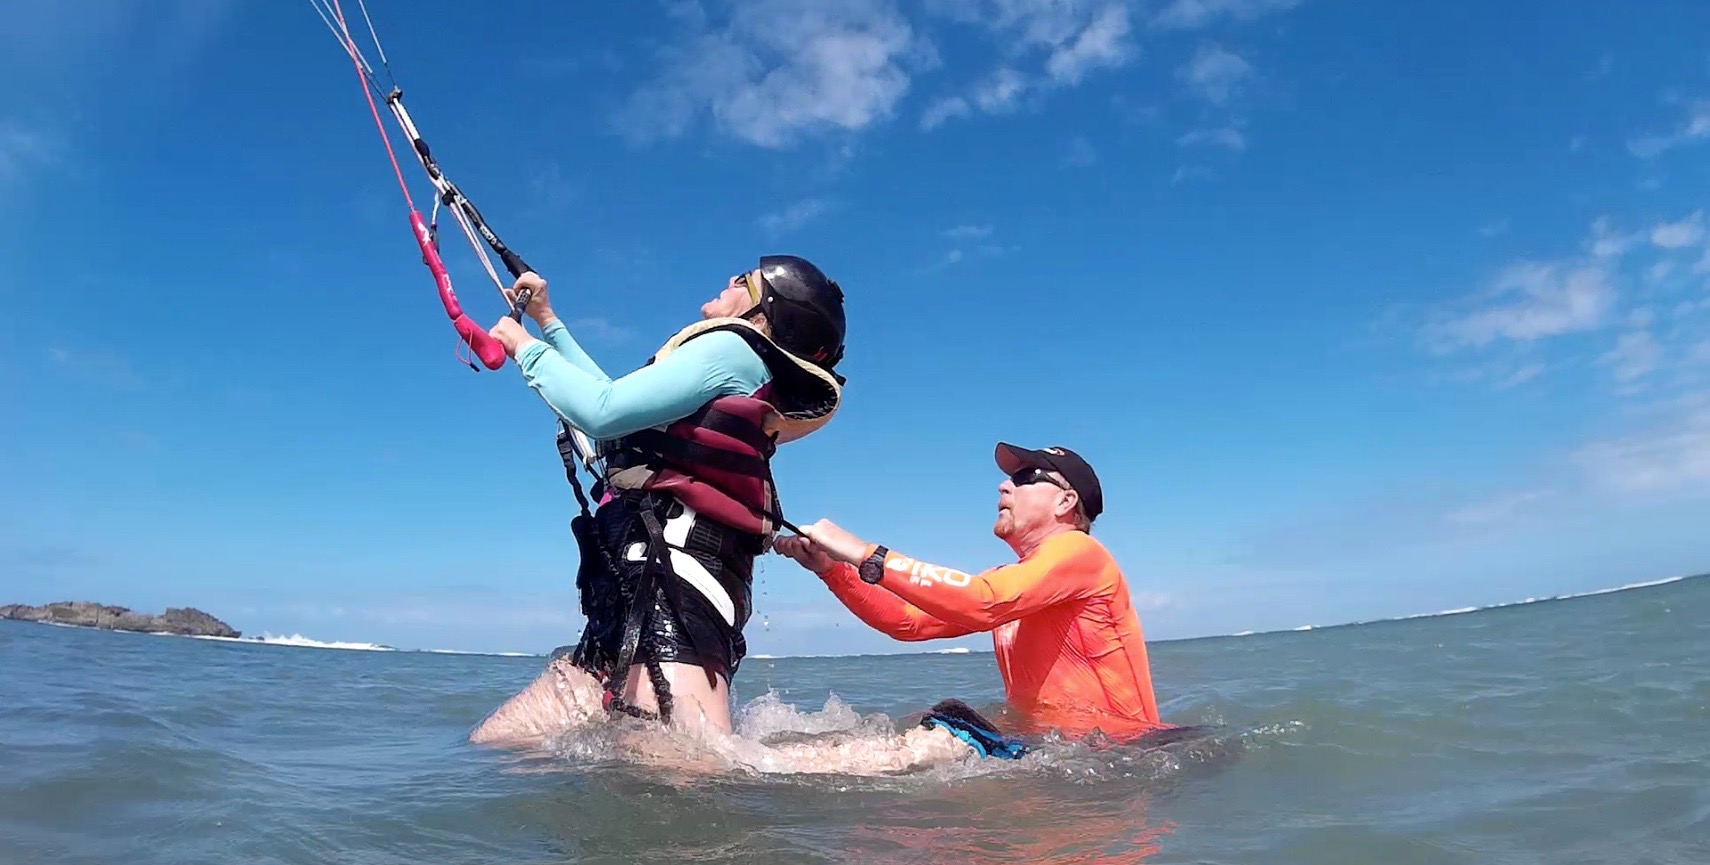 Learning to kiteboard in the Dominican Republic with instructor, Gerhard Marsch, owner of Ontario-based Ukiteboard.com